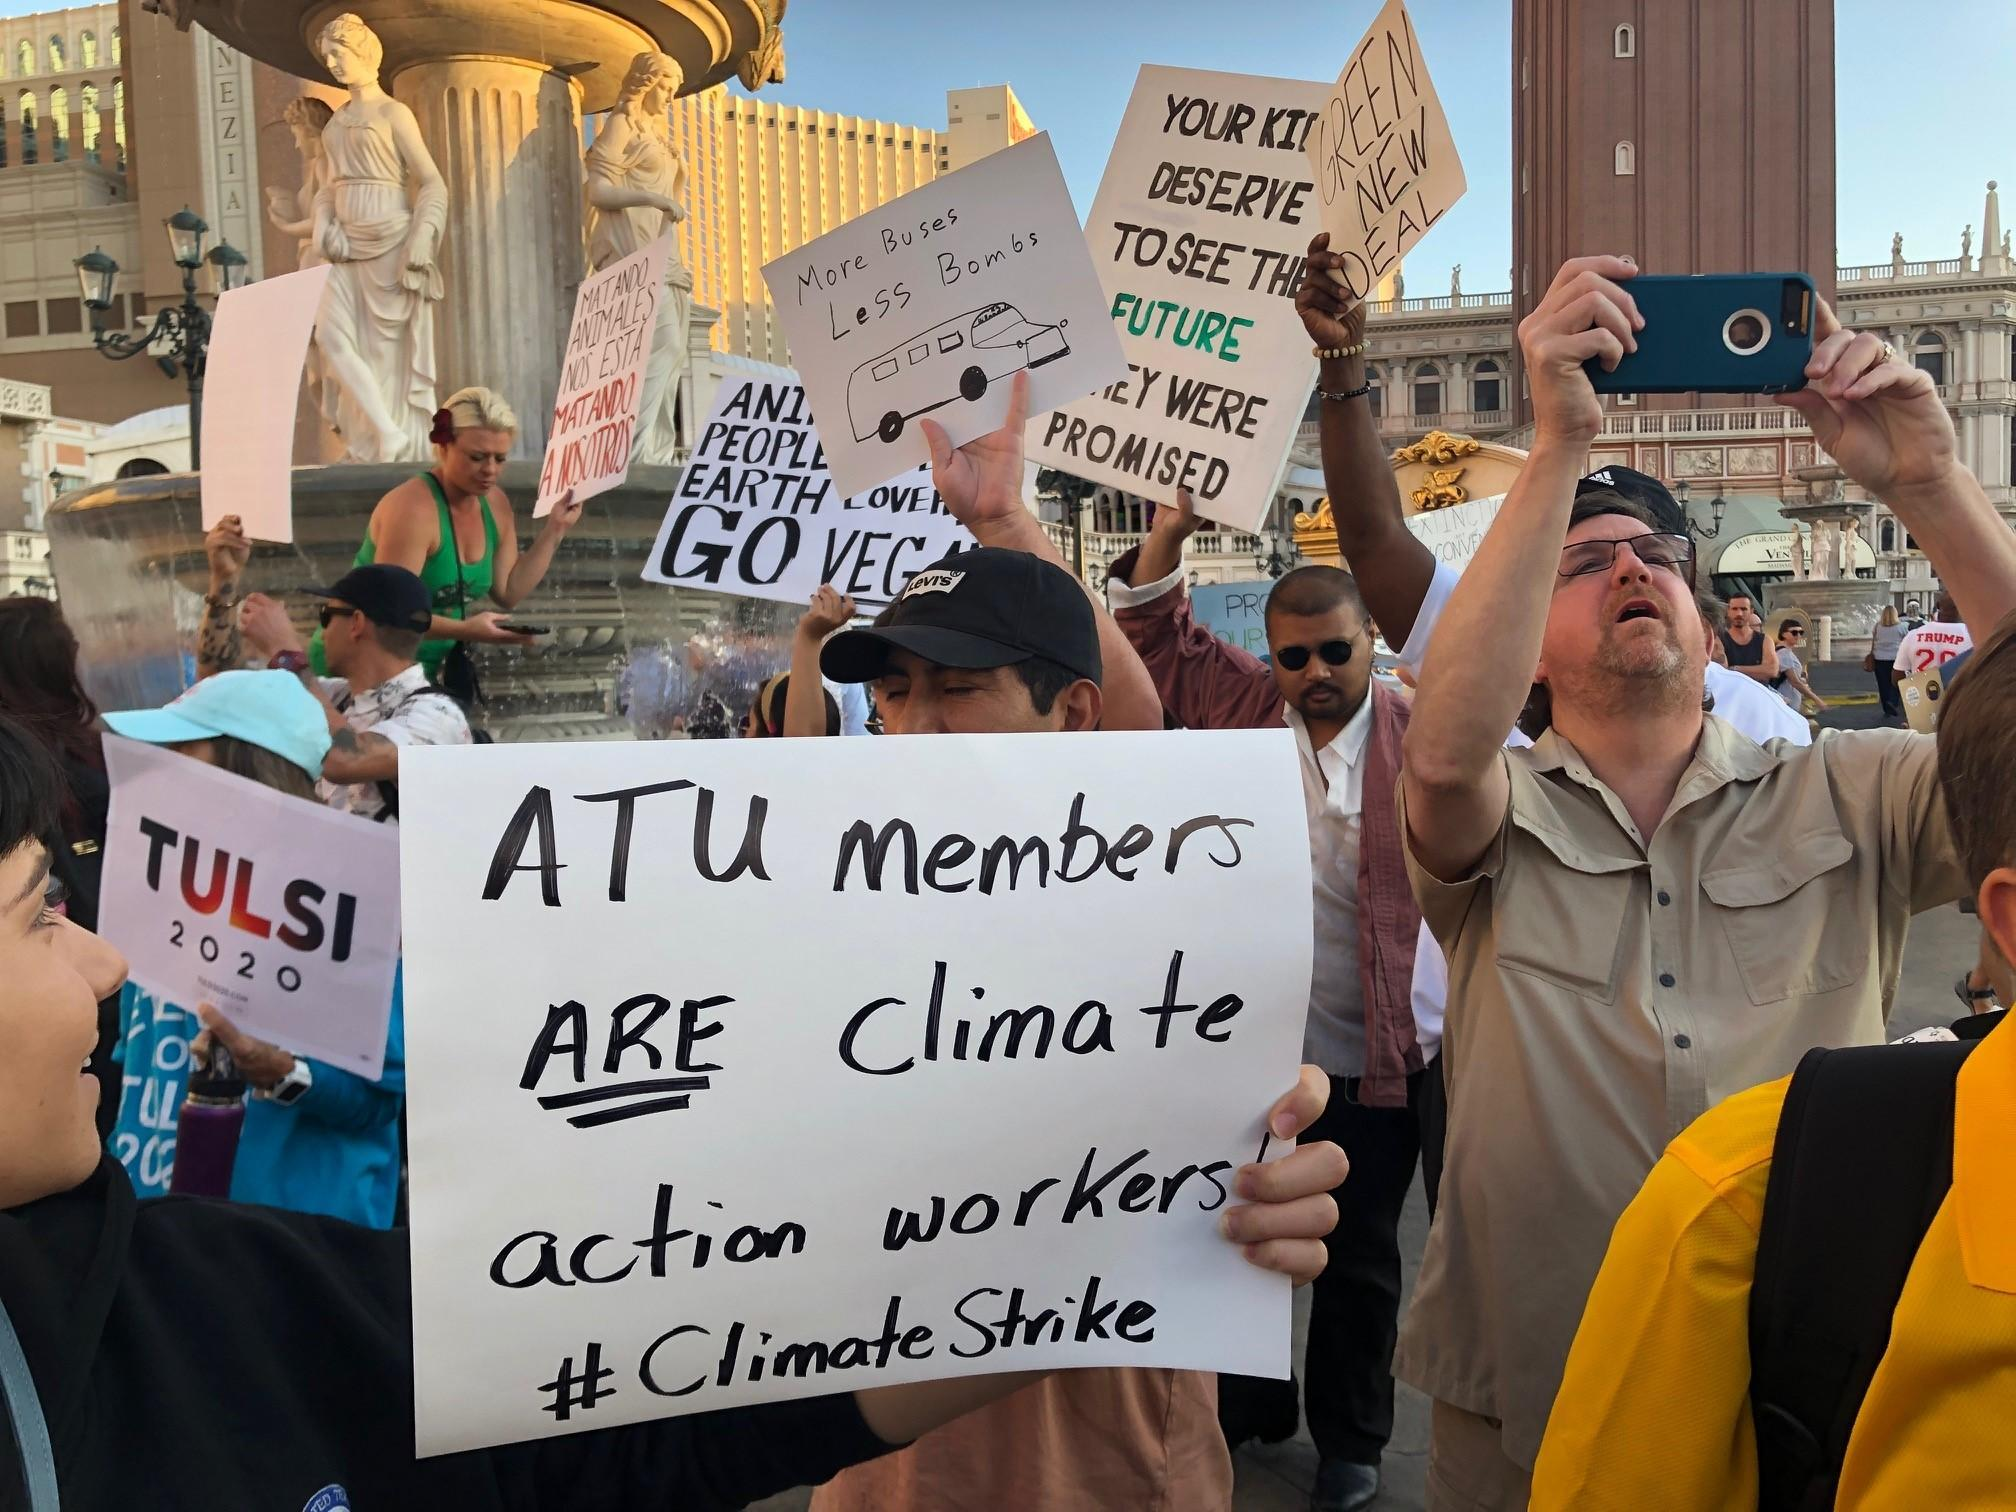 transit workers are climate action workers